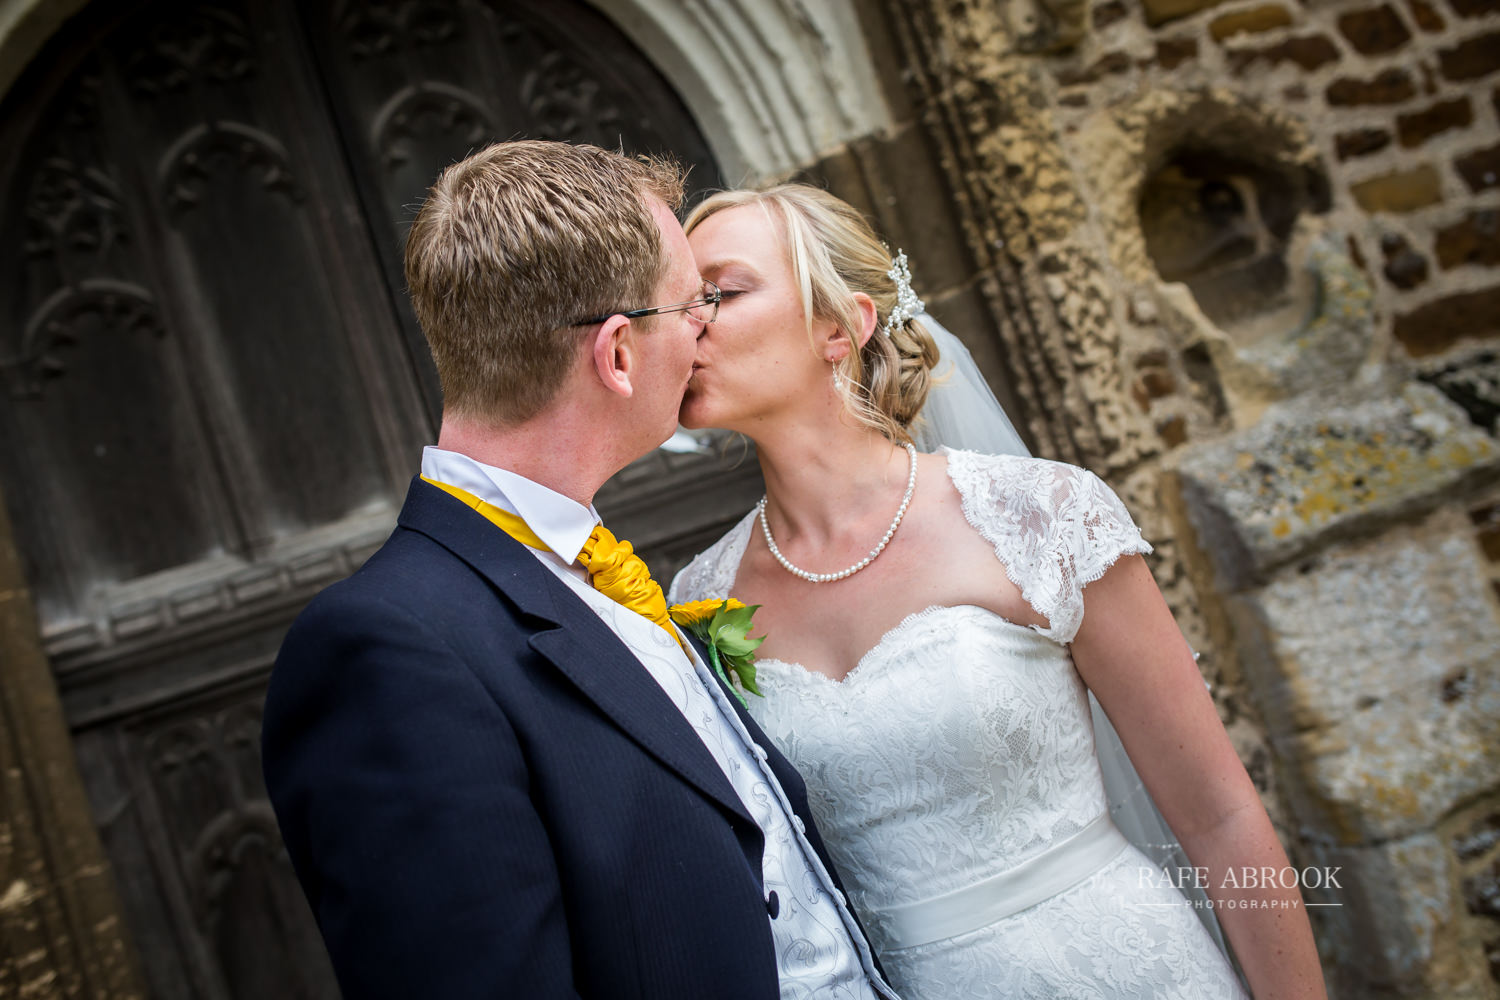 minstrel court wedding royston cambridge hertfordshire wedding photographer-1216.jpg